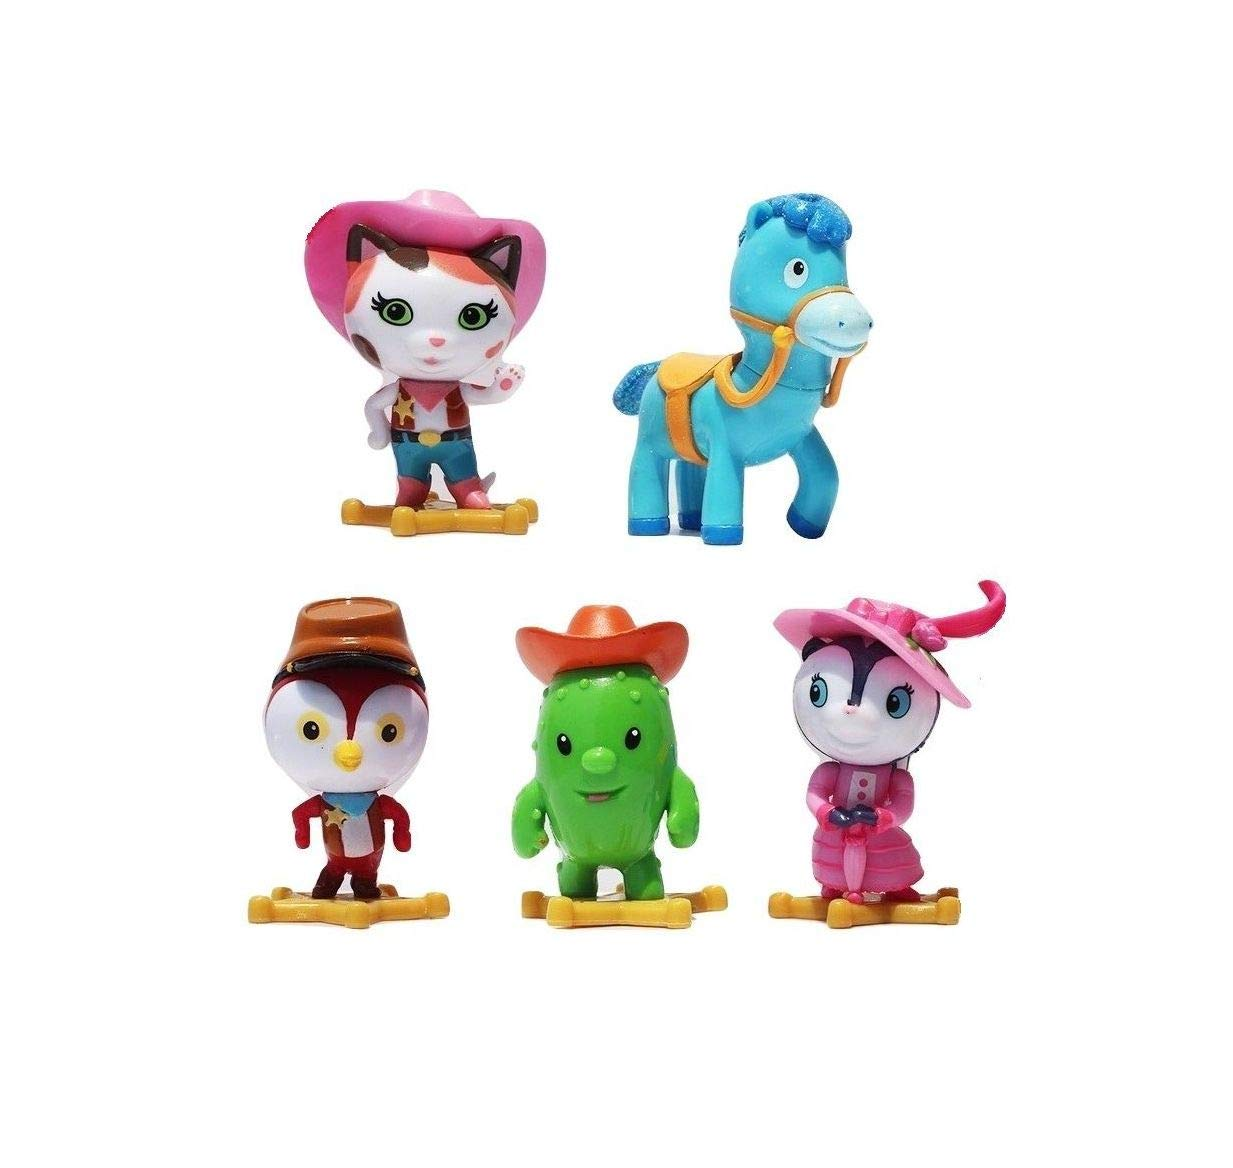 Love Gift Sheriff Kalie's Wild West 5 Figures Cake Topper Complete Toy Doll Quick Arrive